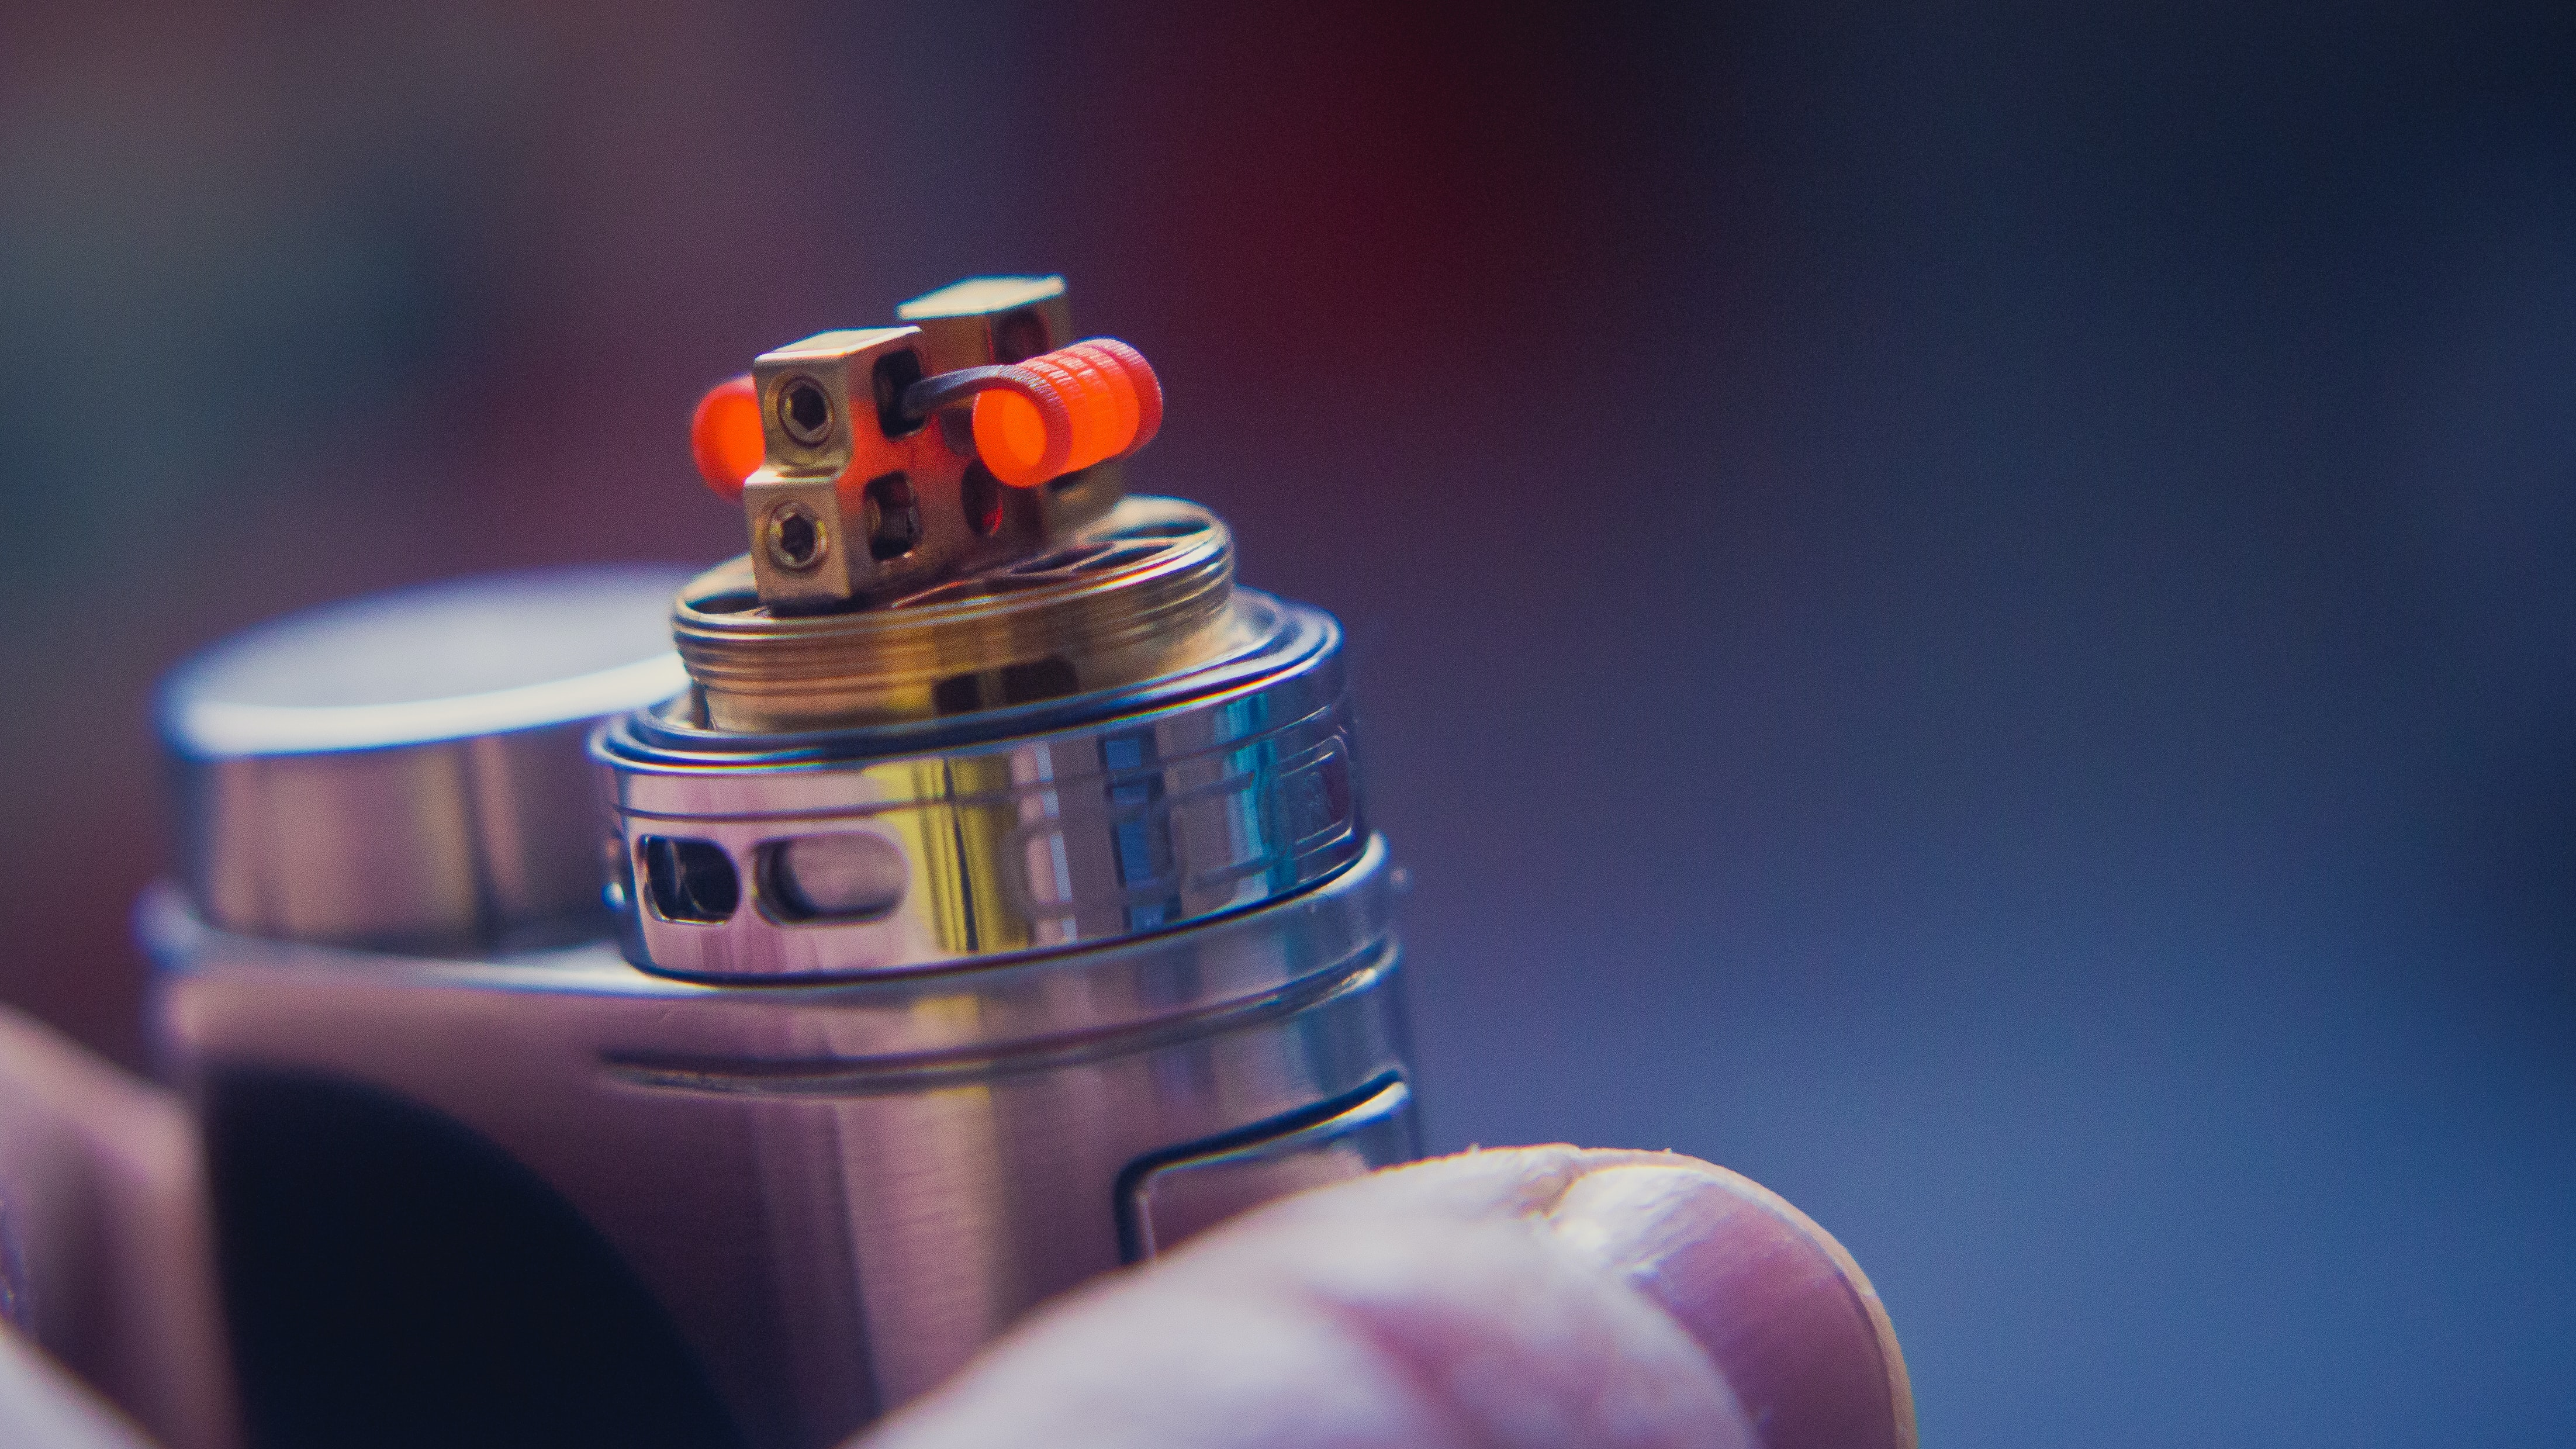 person holding silver tube type mod